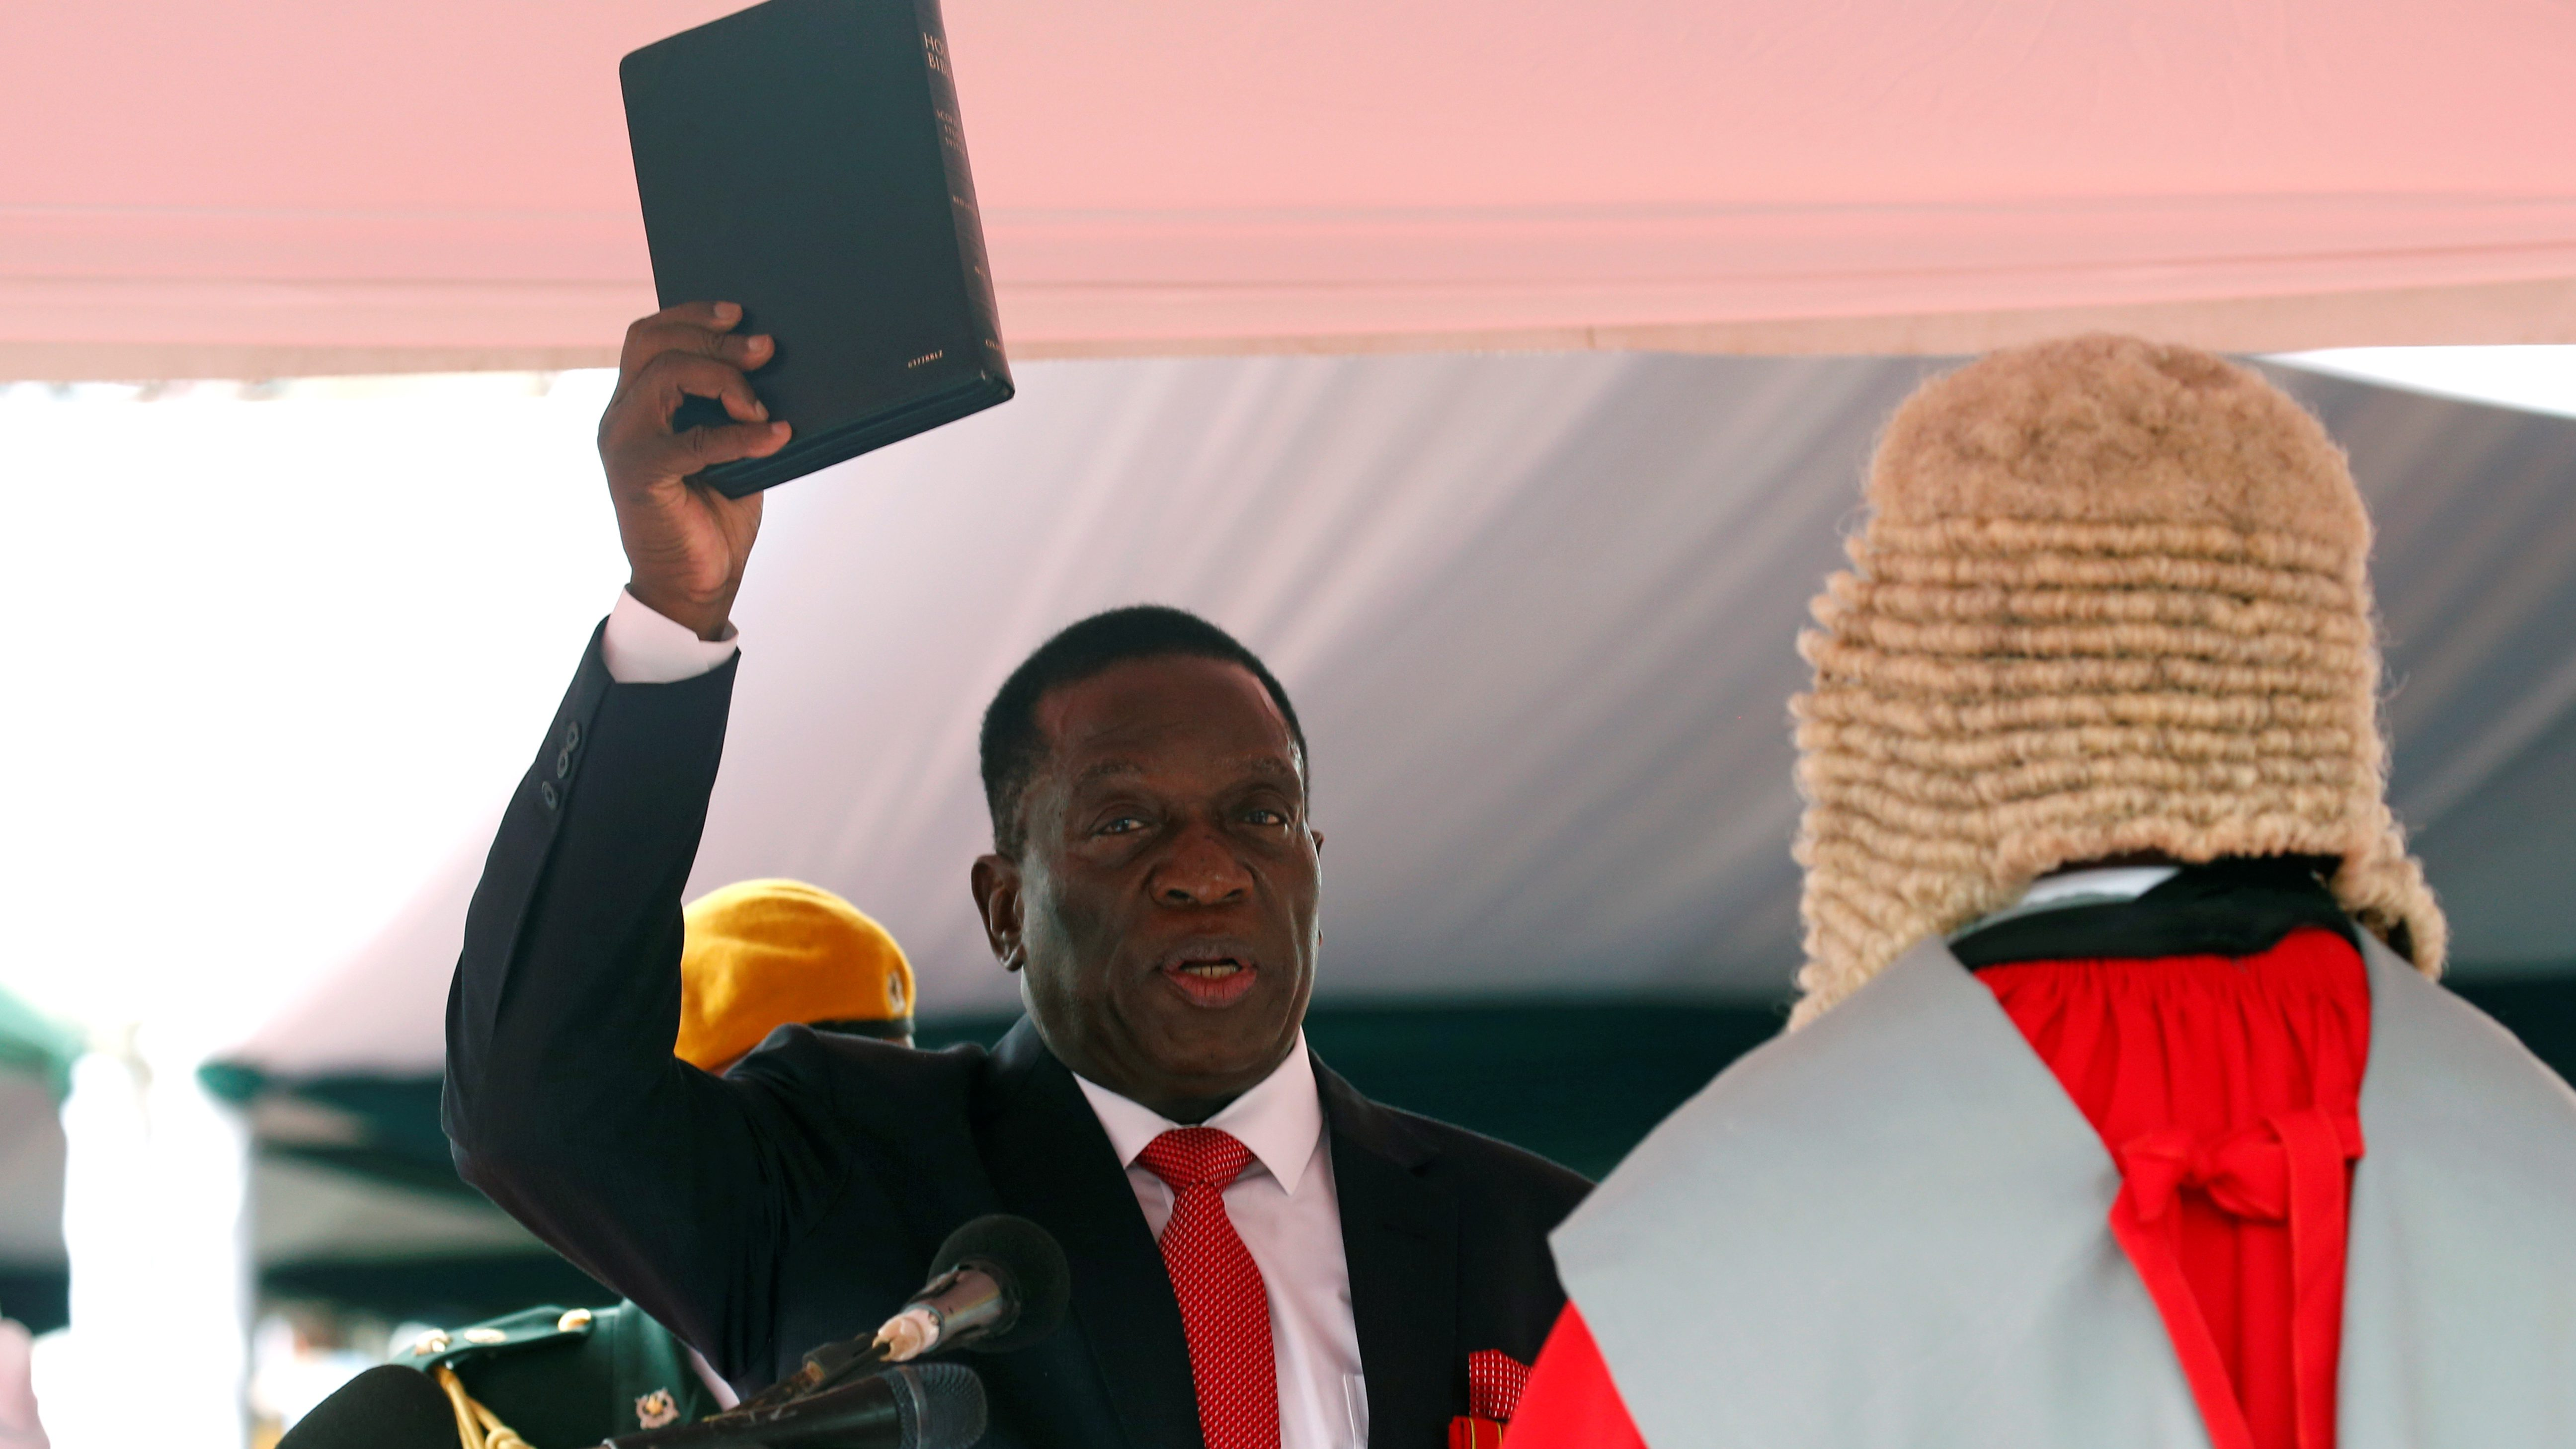 Emmerson Mnangagwa is sworn in as Zimbabwe's president in Harare, Zimbabwe, November 24, 2017. REUTERS/Mike Hutchings - RC1CE594BE80